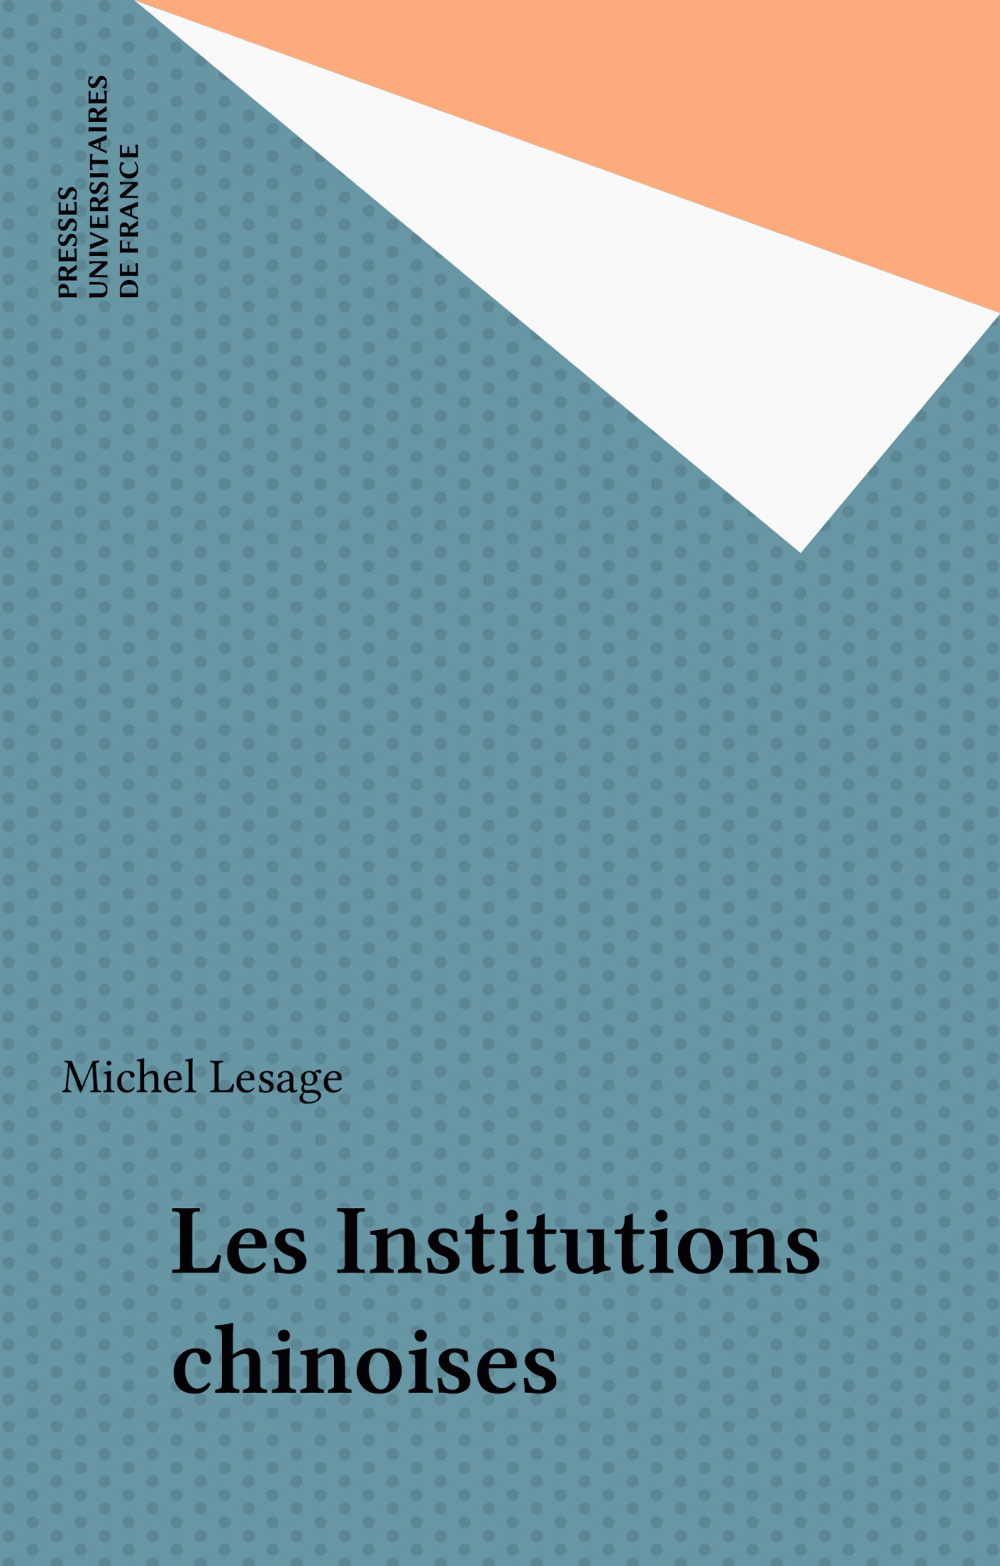 Les Institutions chinoises